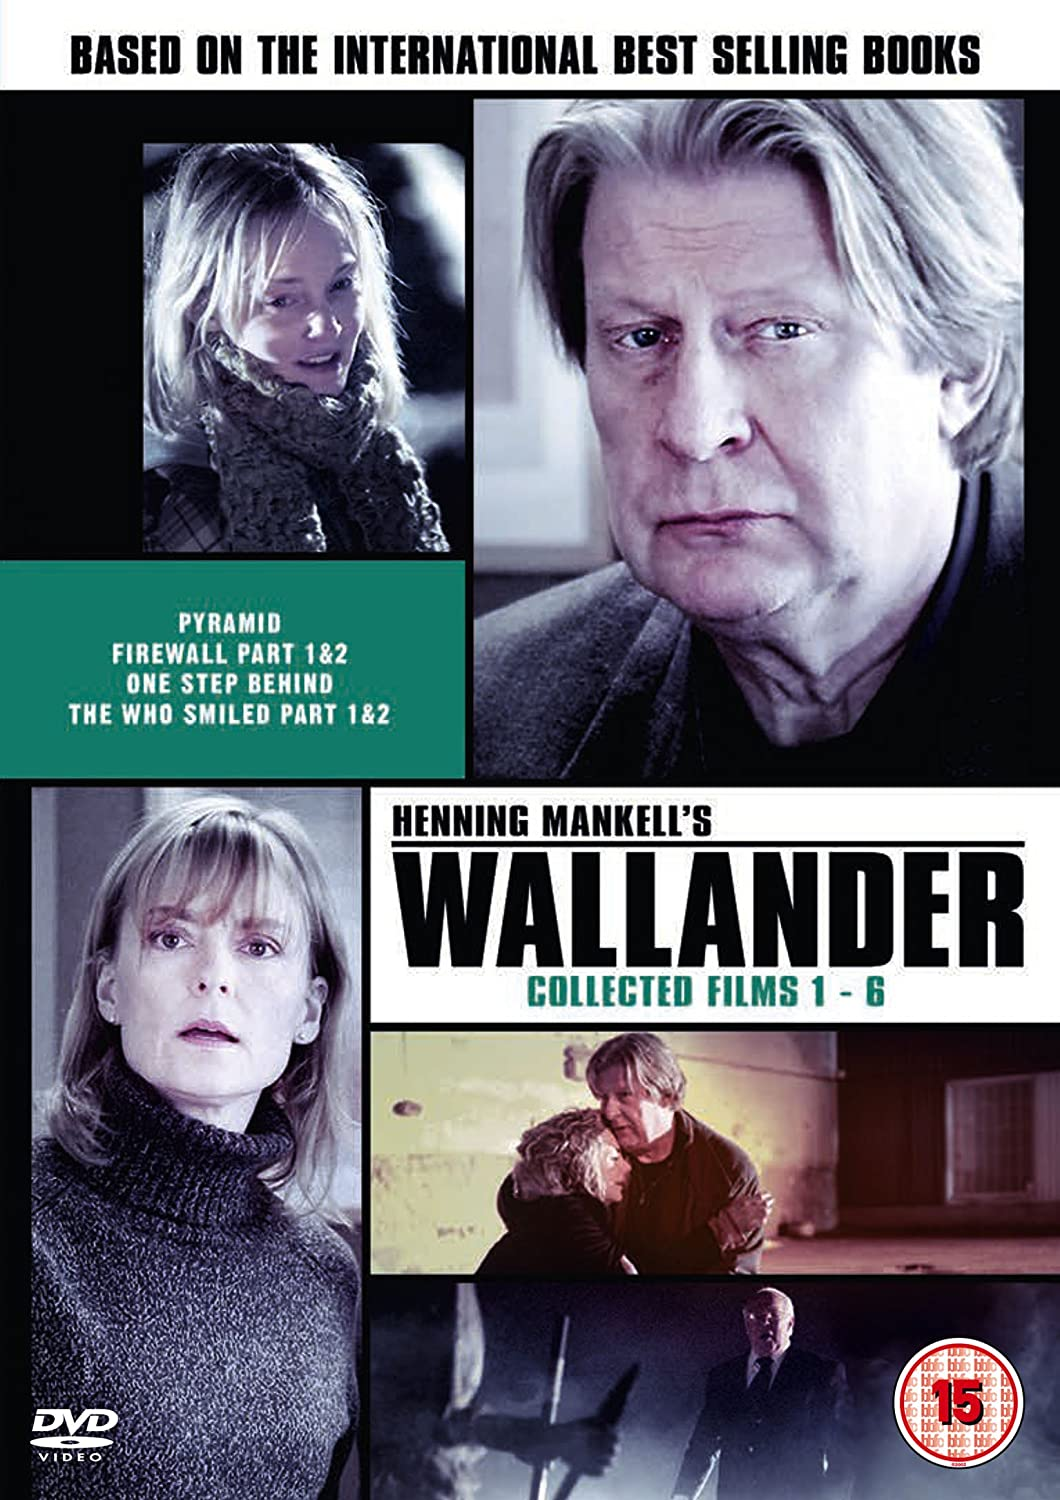 Wallander: Original Films 1-6